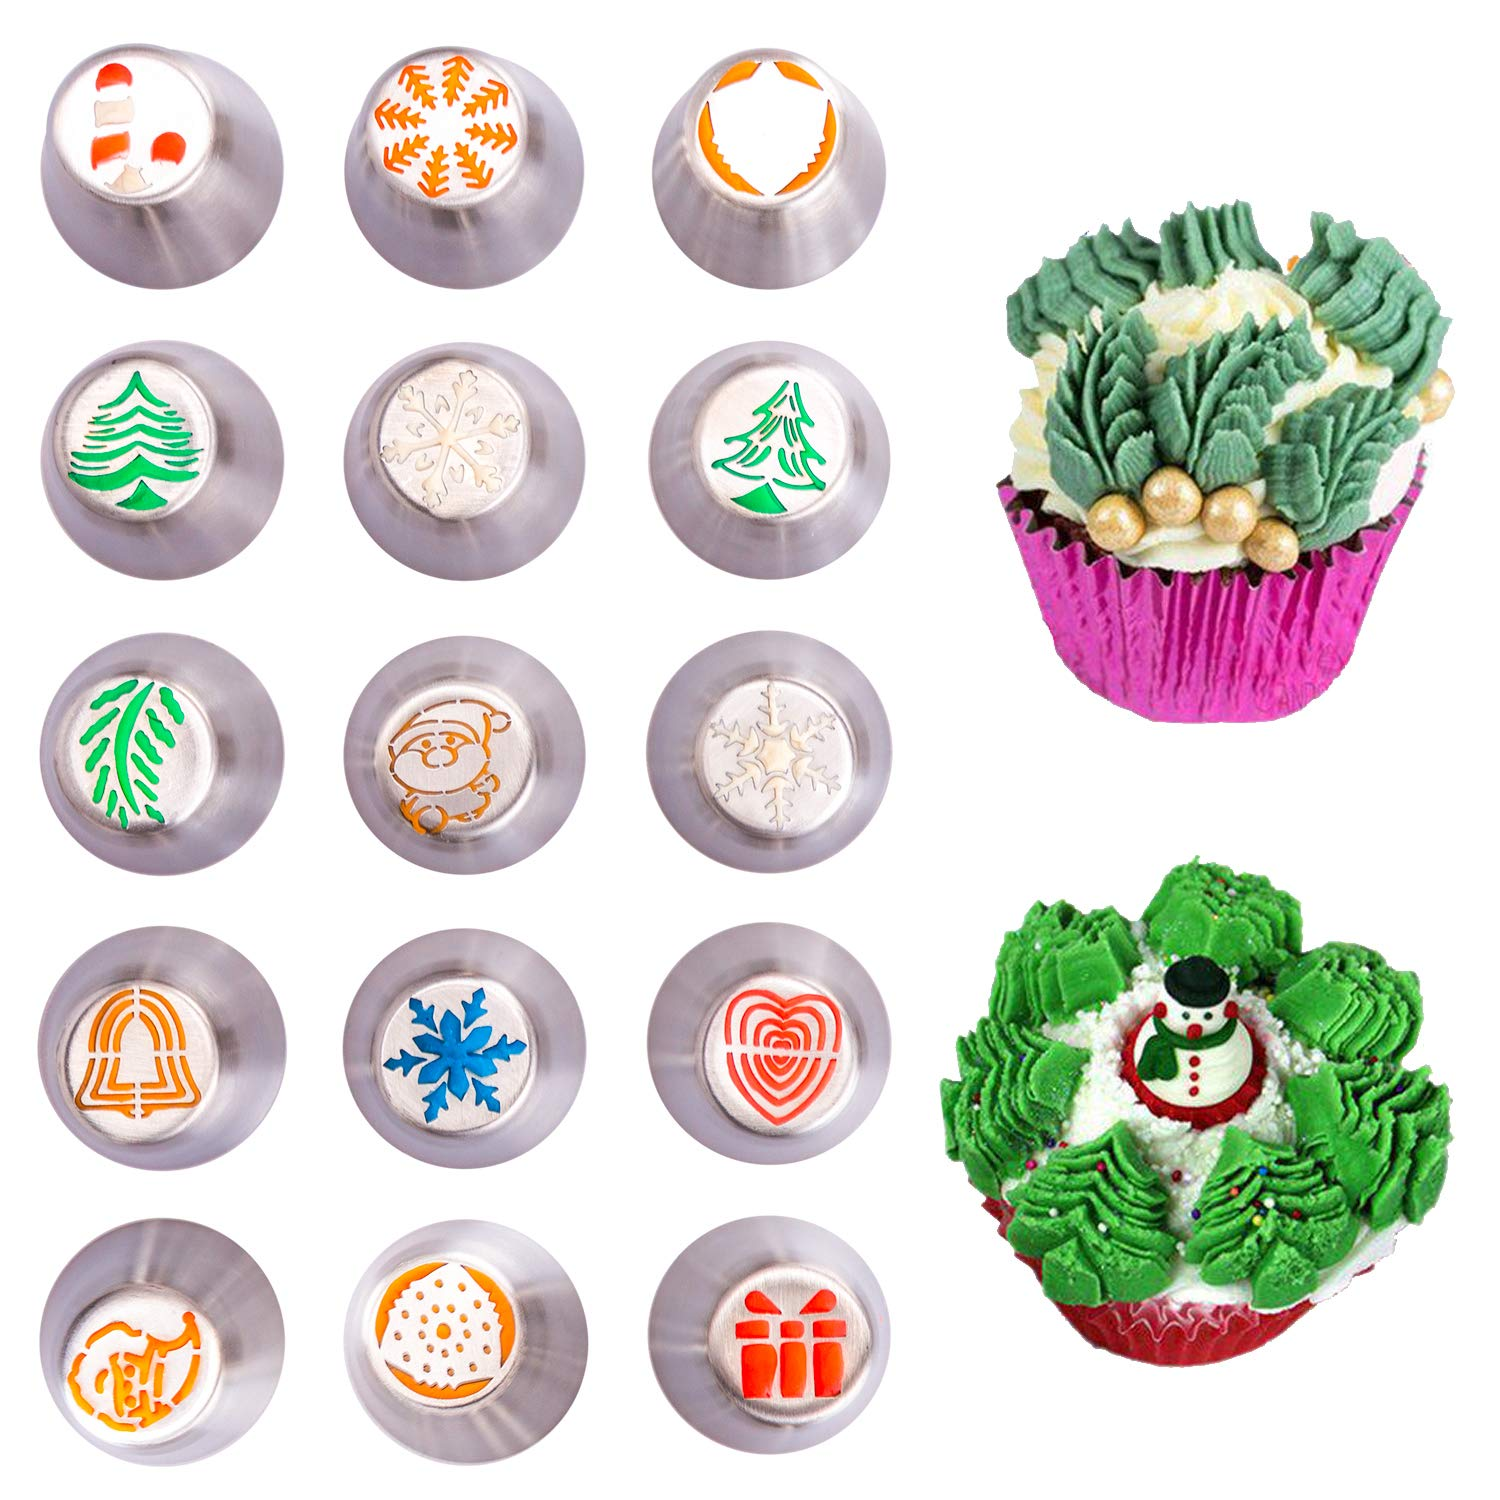 Christmas Russian Icing Piping Cake/Cupcake Decorating Tips/Kit Set Party Supplies/Decorations